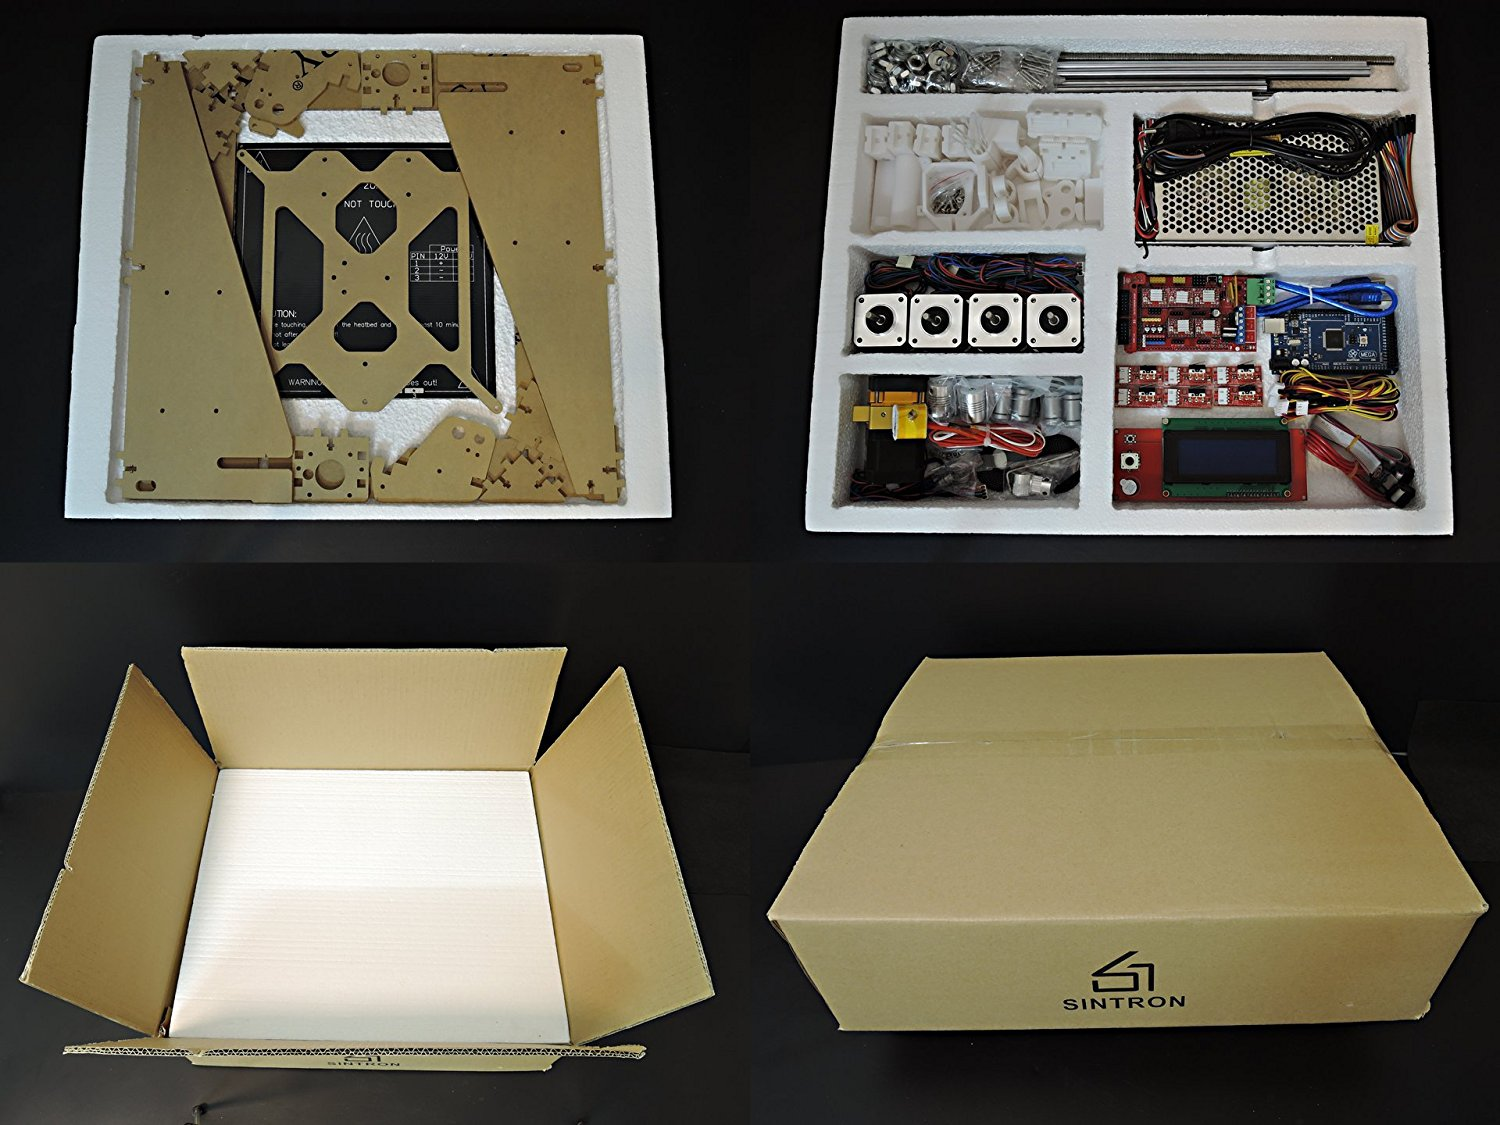 Sintron Ultimate 3d Printer Full Complete Kit For Diy Reprap Prusa Connections Of Ramps 1 4 I3